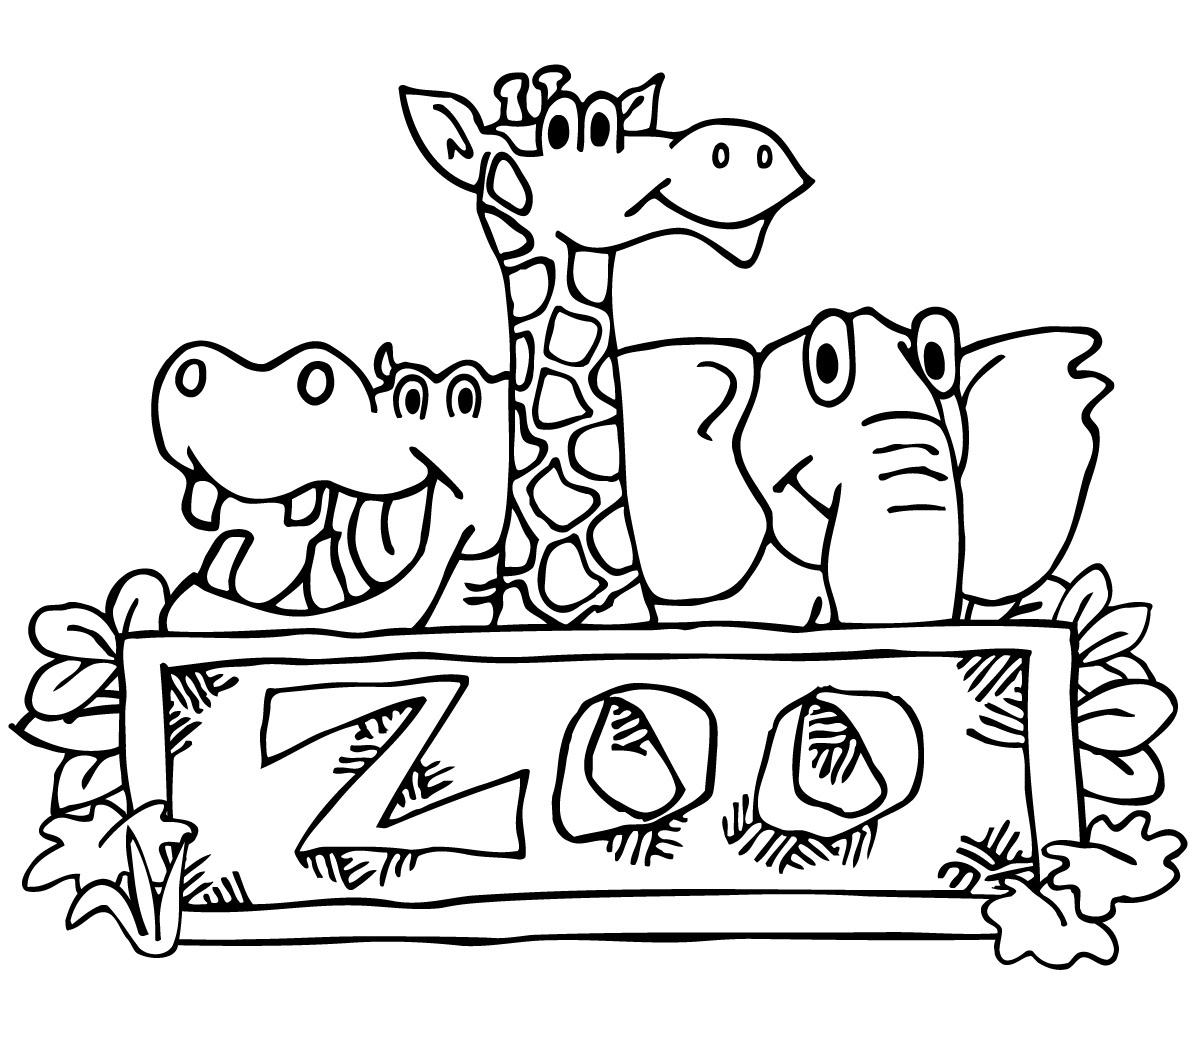 Z00 clipart black and white jpg library download Zoo Clipart Black And White – Pencil And In Color Zoo ... jpg library download